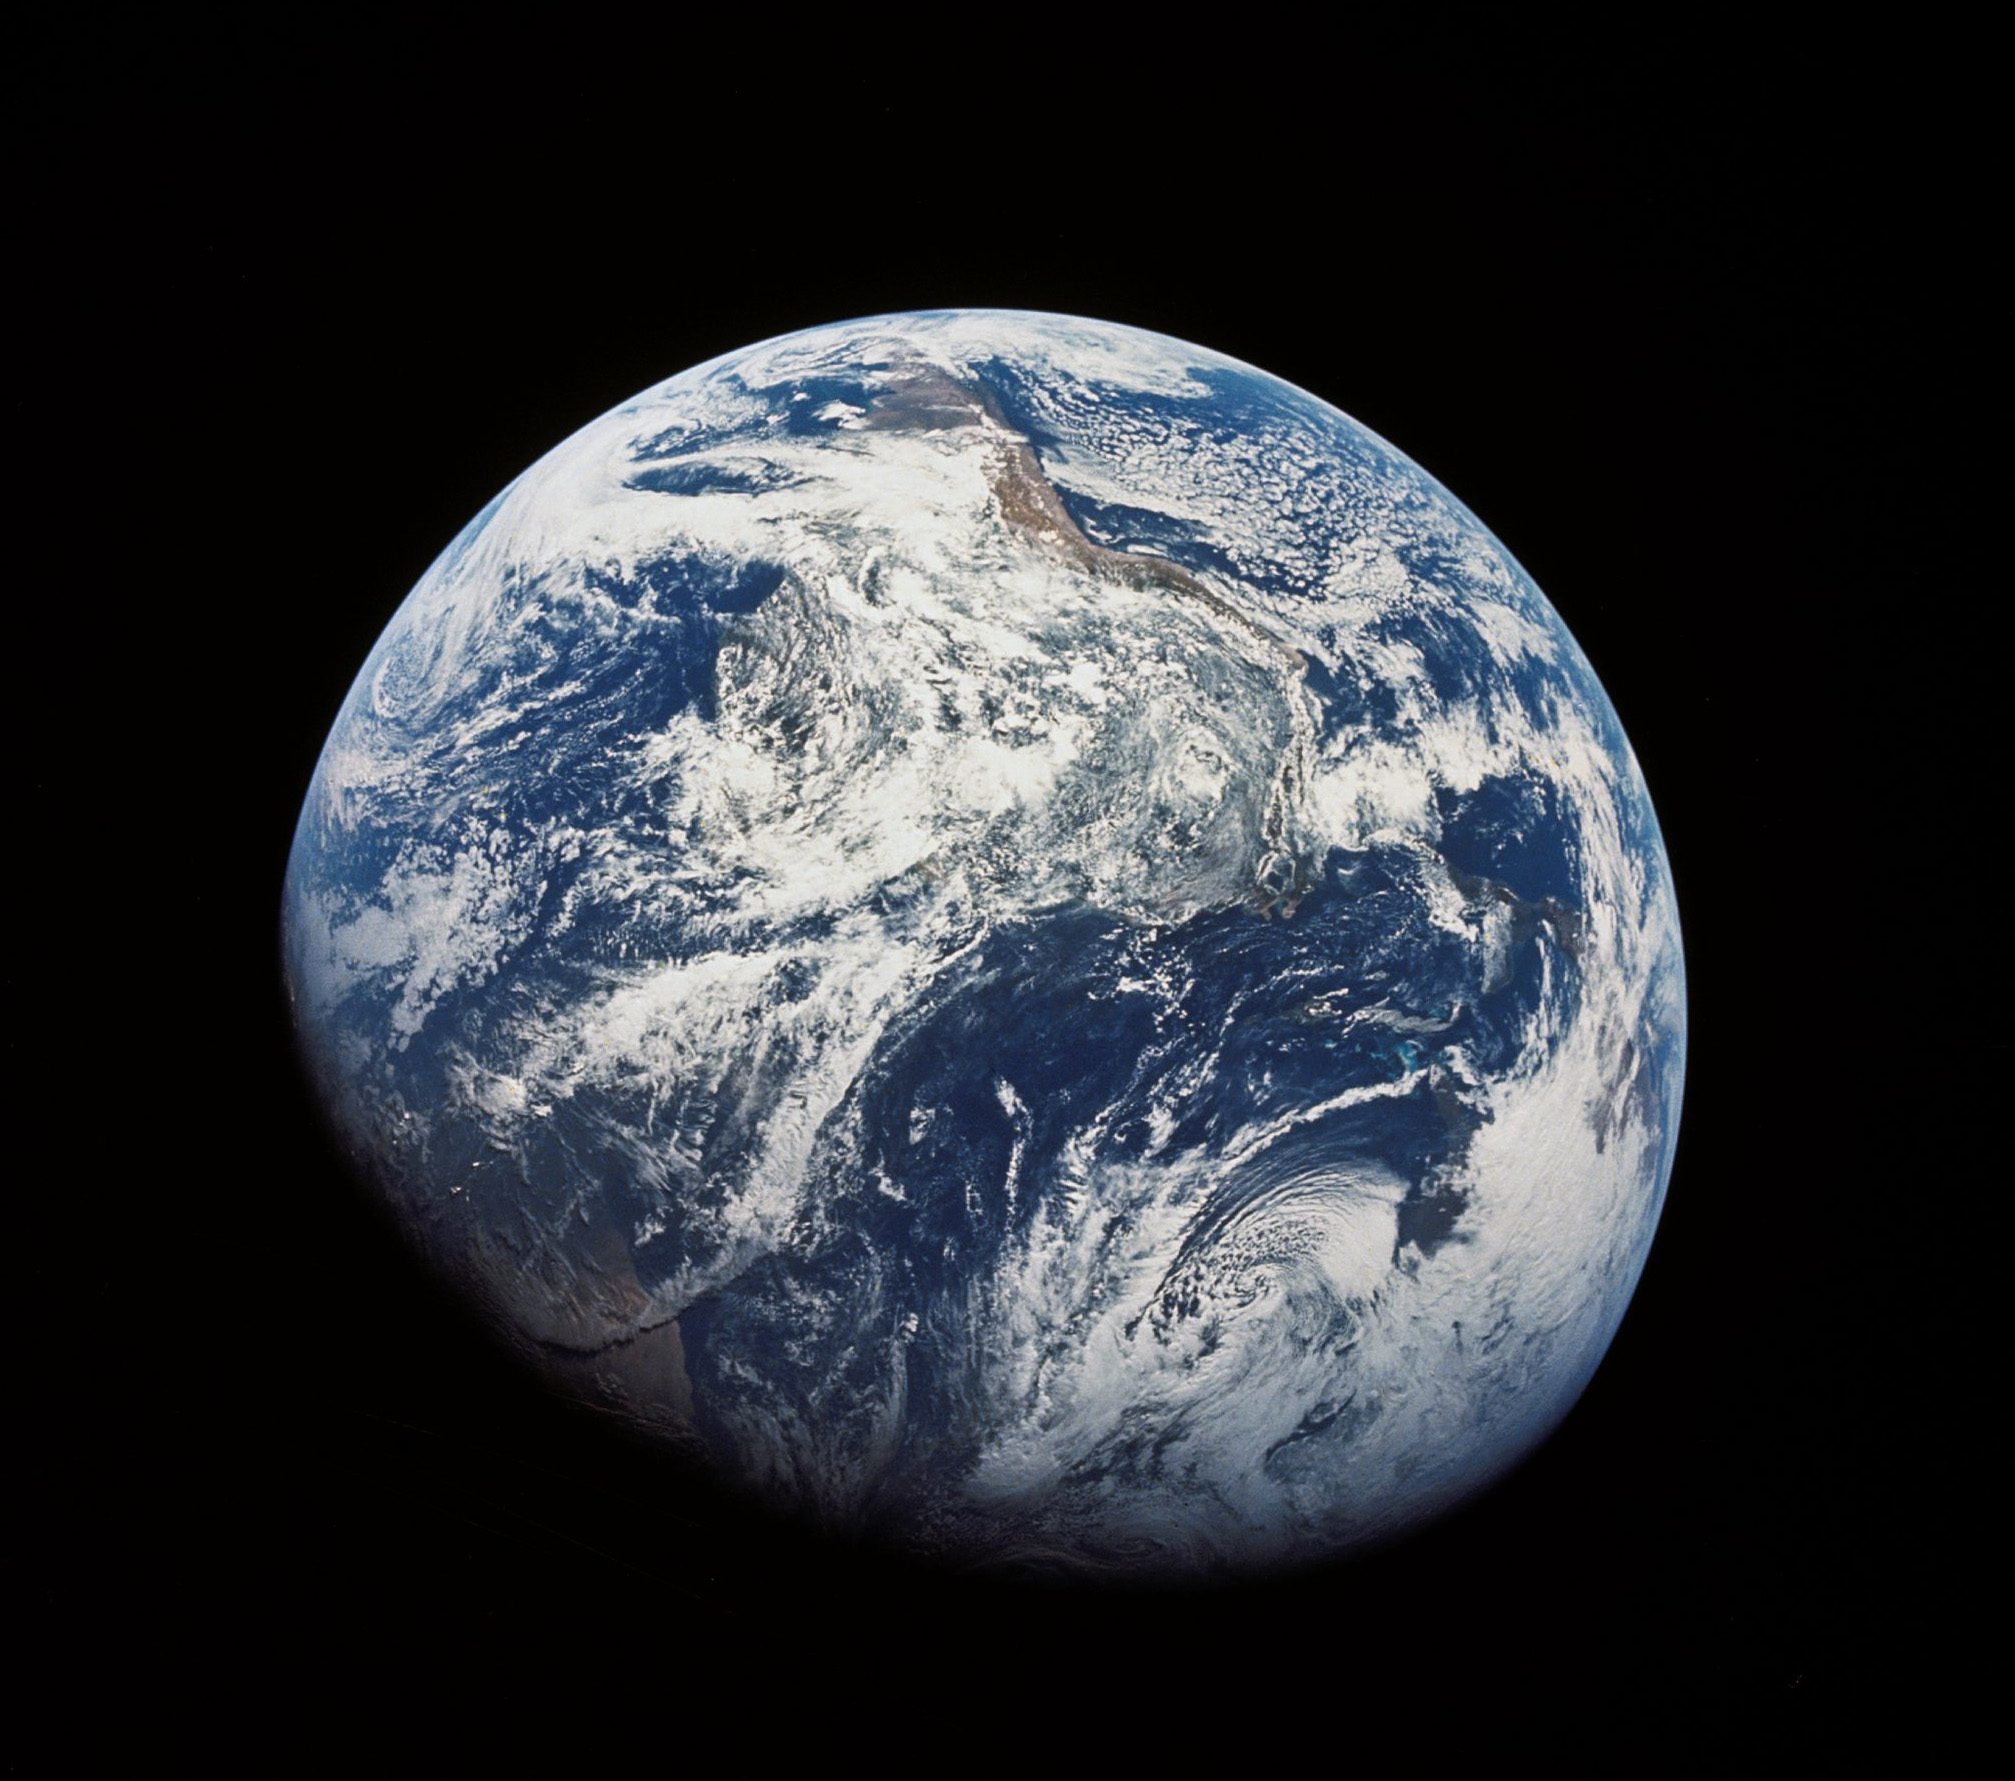 The first image ever taken by humans of the whole Earth, probably photographed by William Anders. The photo shows the Earth at a distance of about 30,000 km. South is at the top, with South America visible at the covering the top half center, with Africa entering into shadow. North America is in the bottom right.